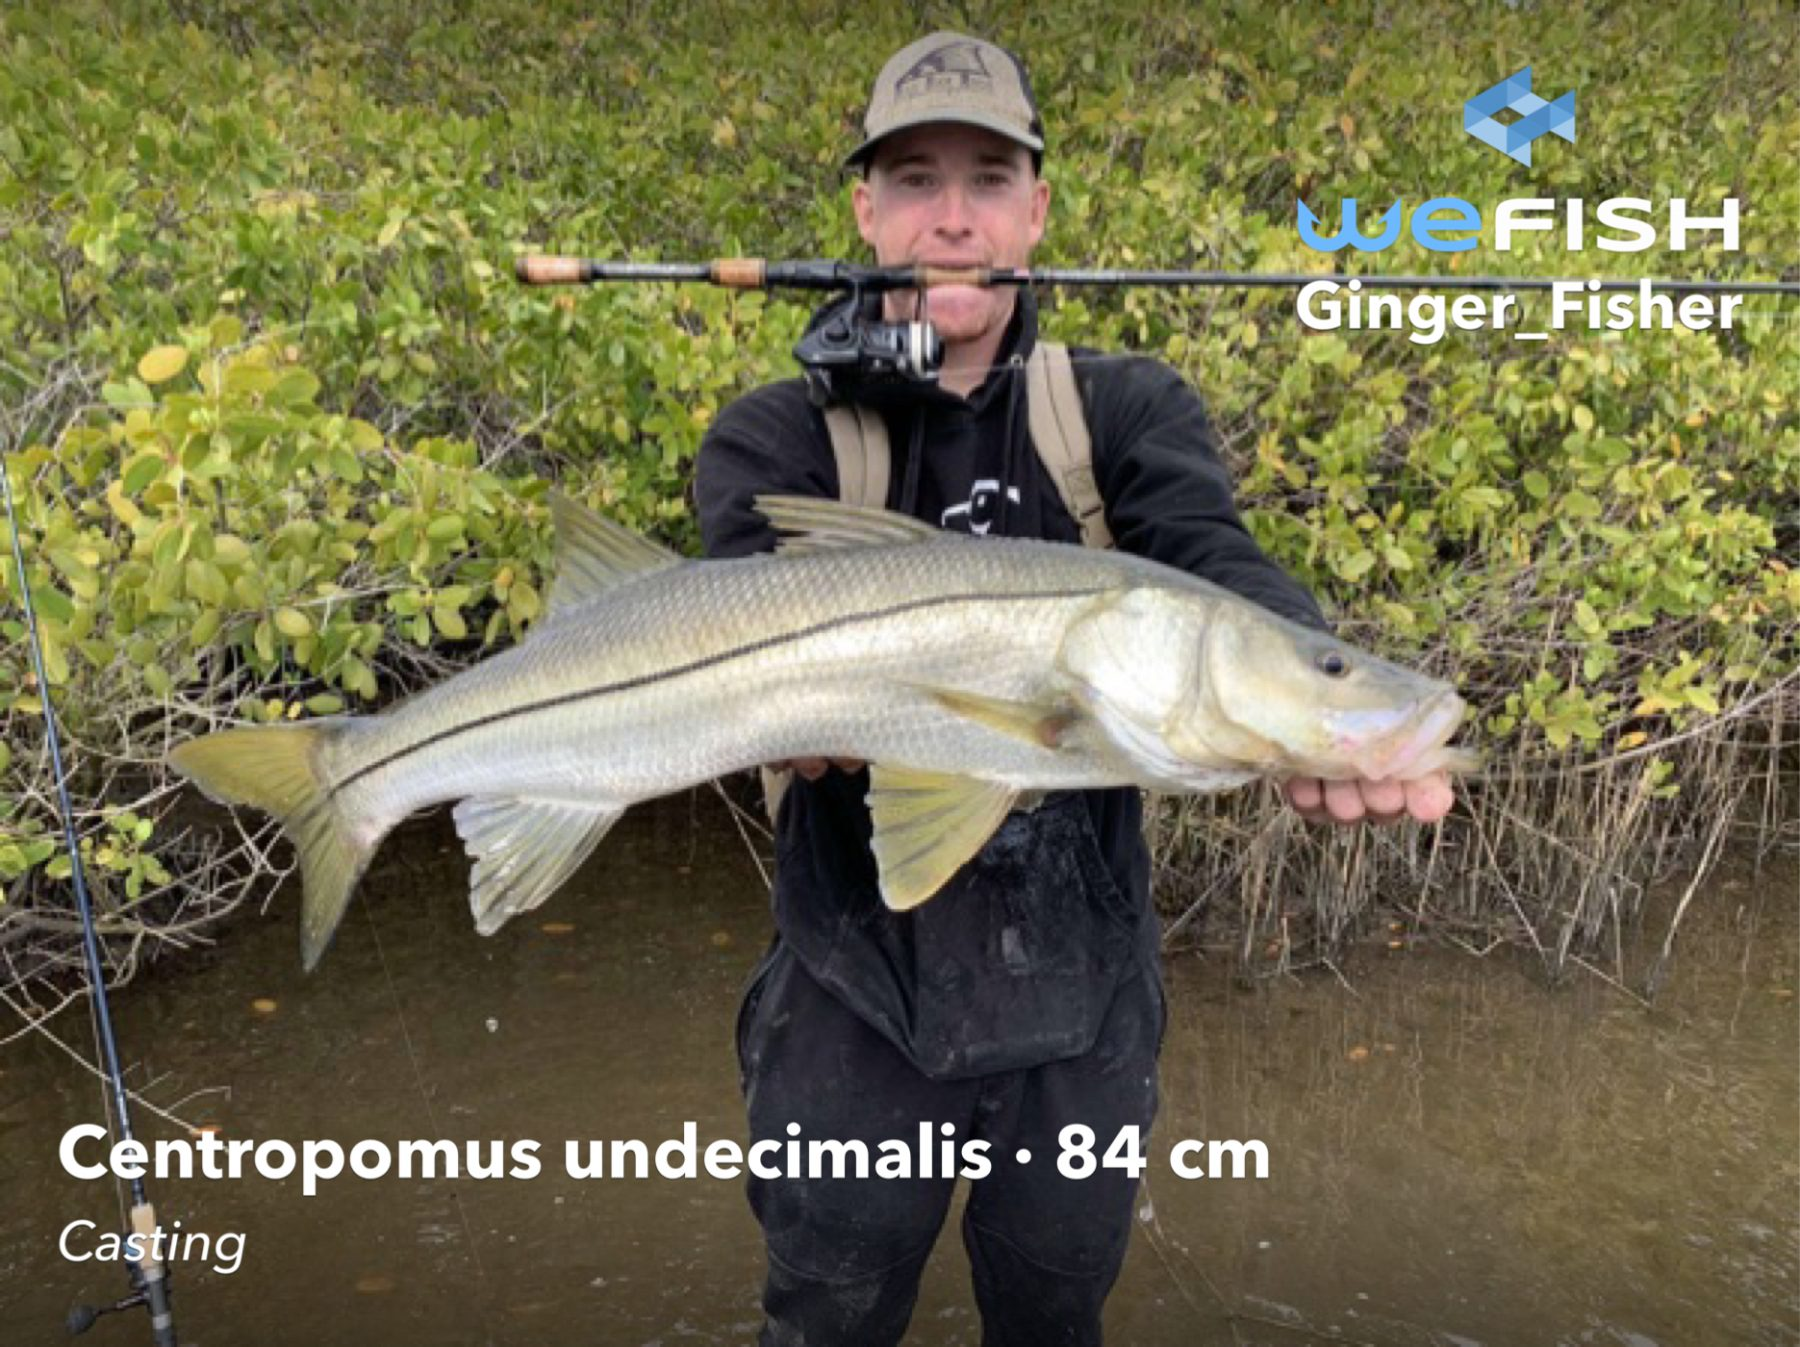 Snook catch Best Fishing Spots in Florida fishing app wefish